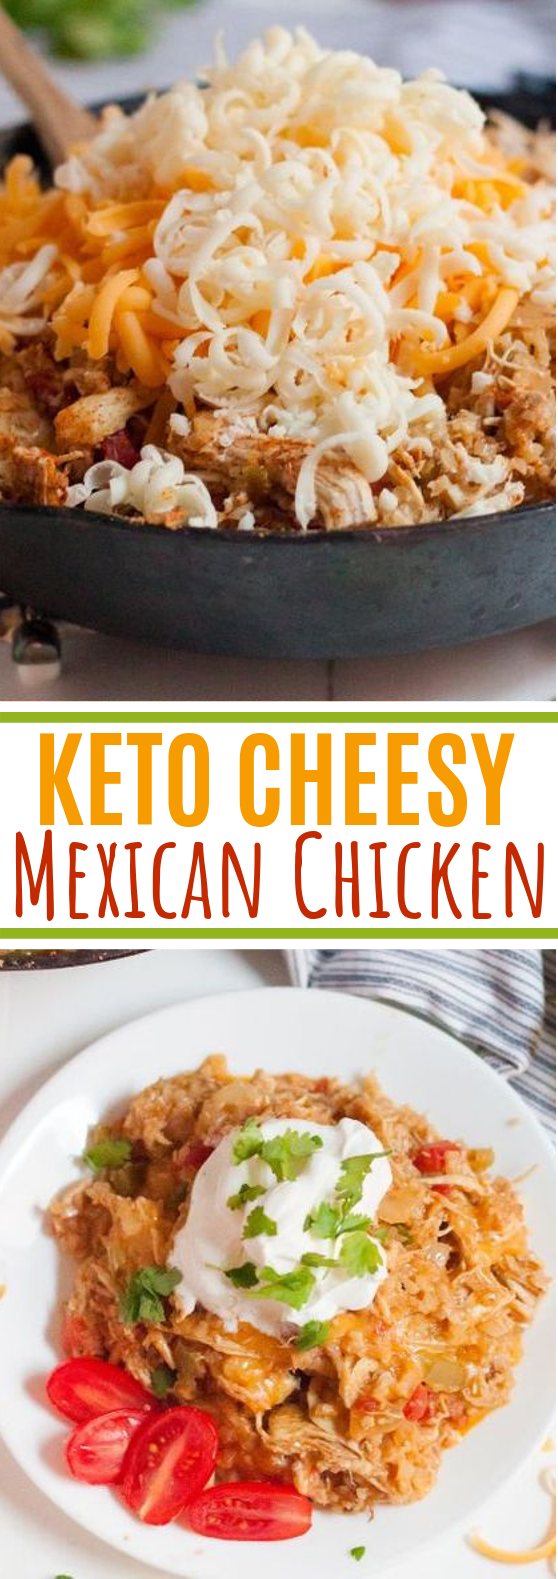 Keto Cheesy Mexican Skillet Chicken #keto #dinner #chicken #lowcarb #diet